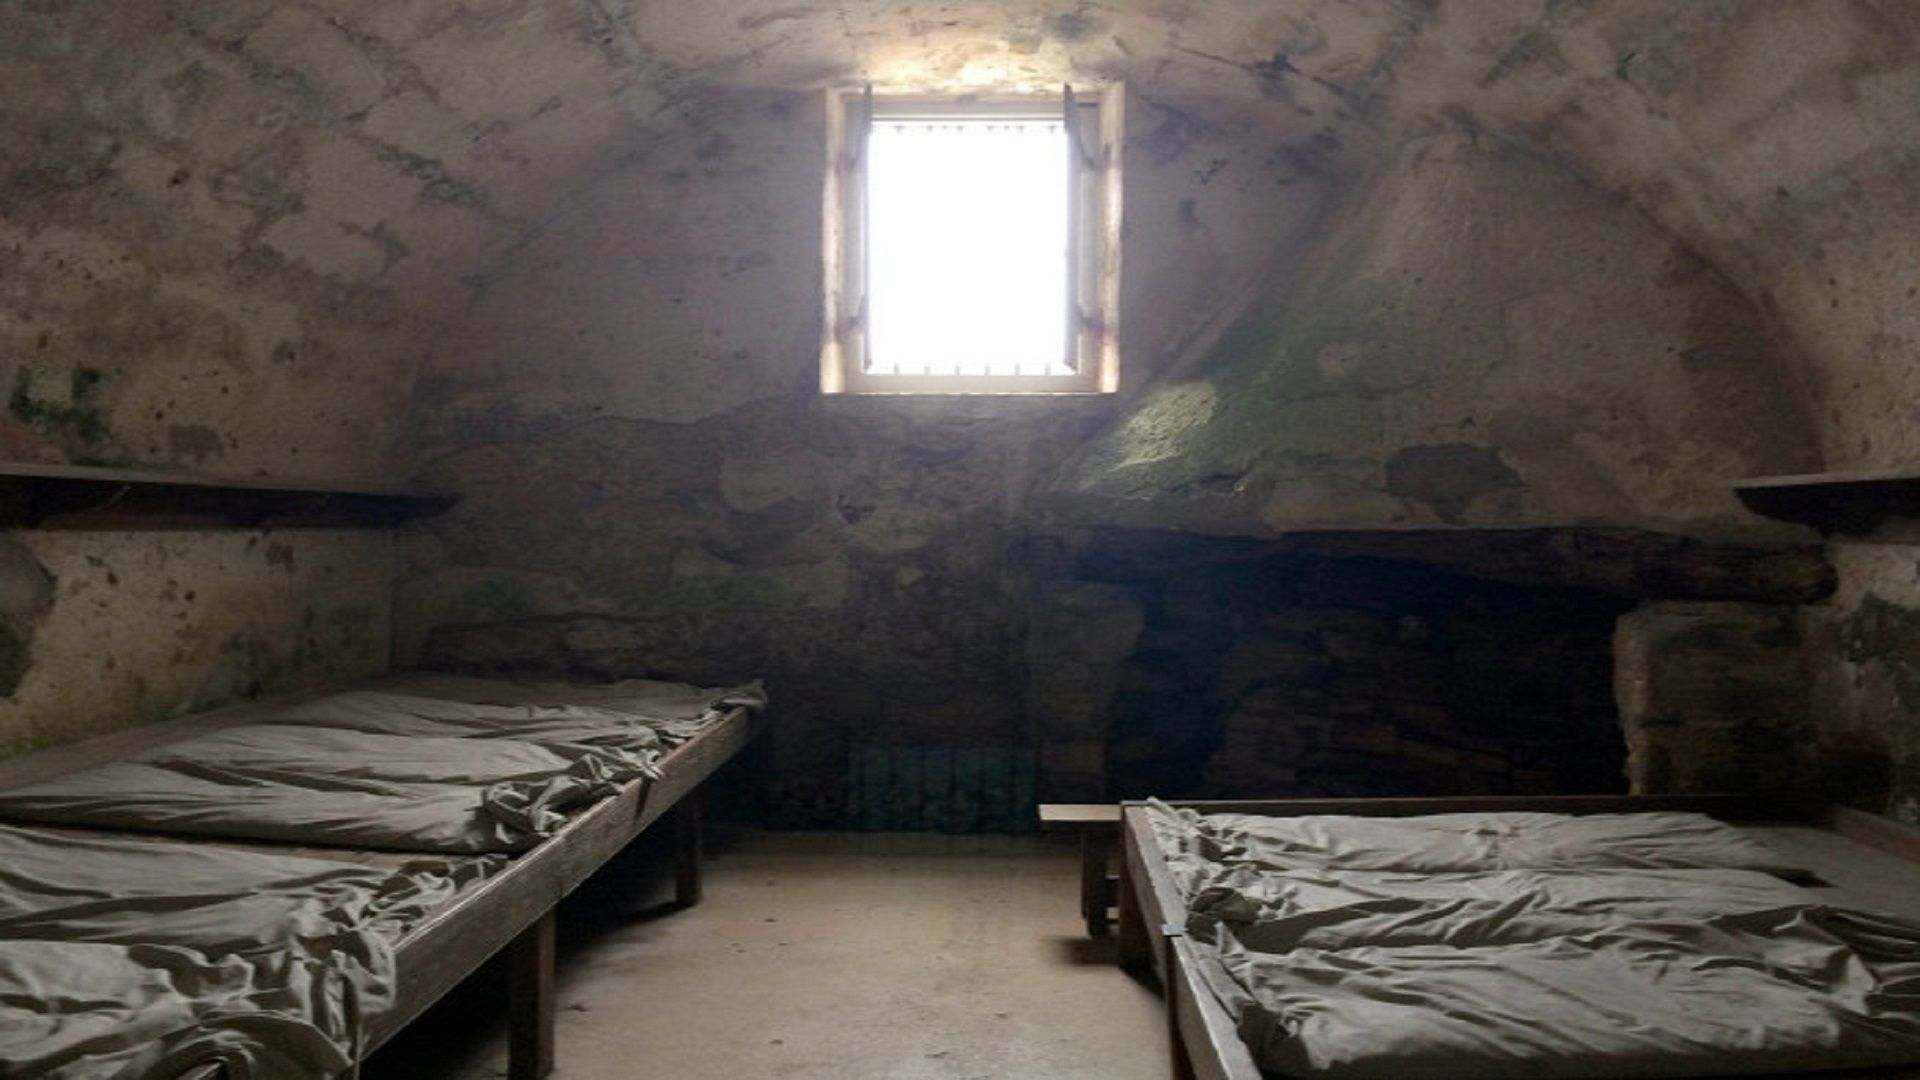 Four Most Haunted Jails in Florida